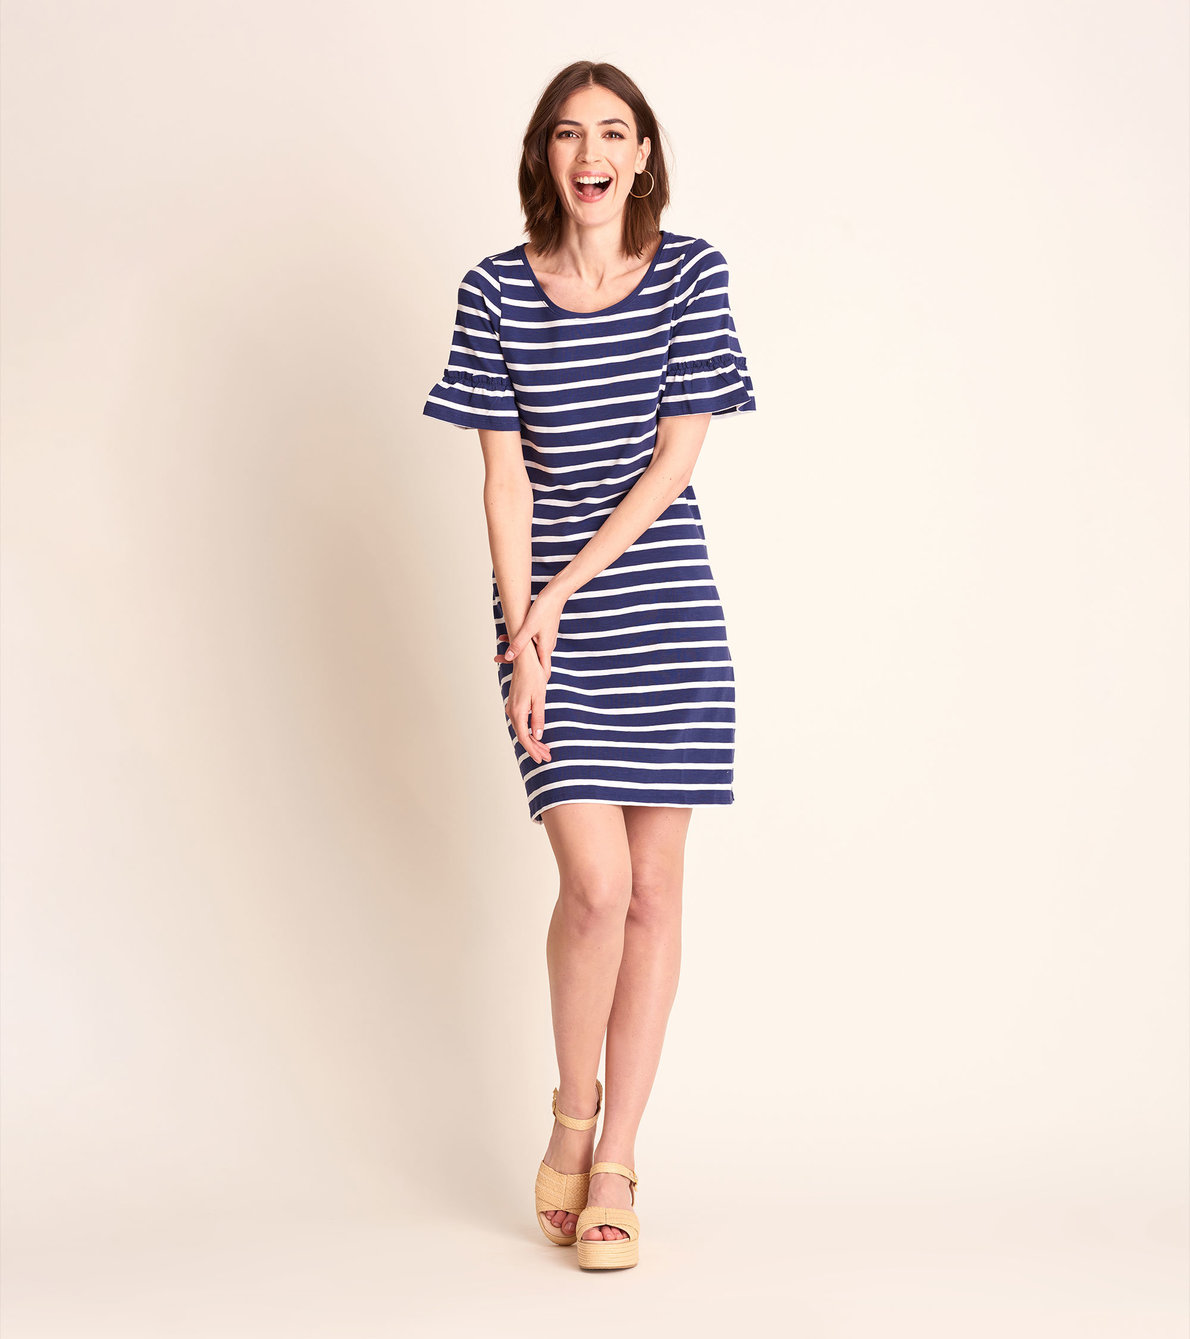 View larger image of Kelli Dress - Patriot Blue Stripes